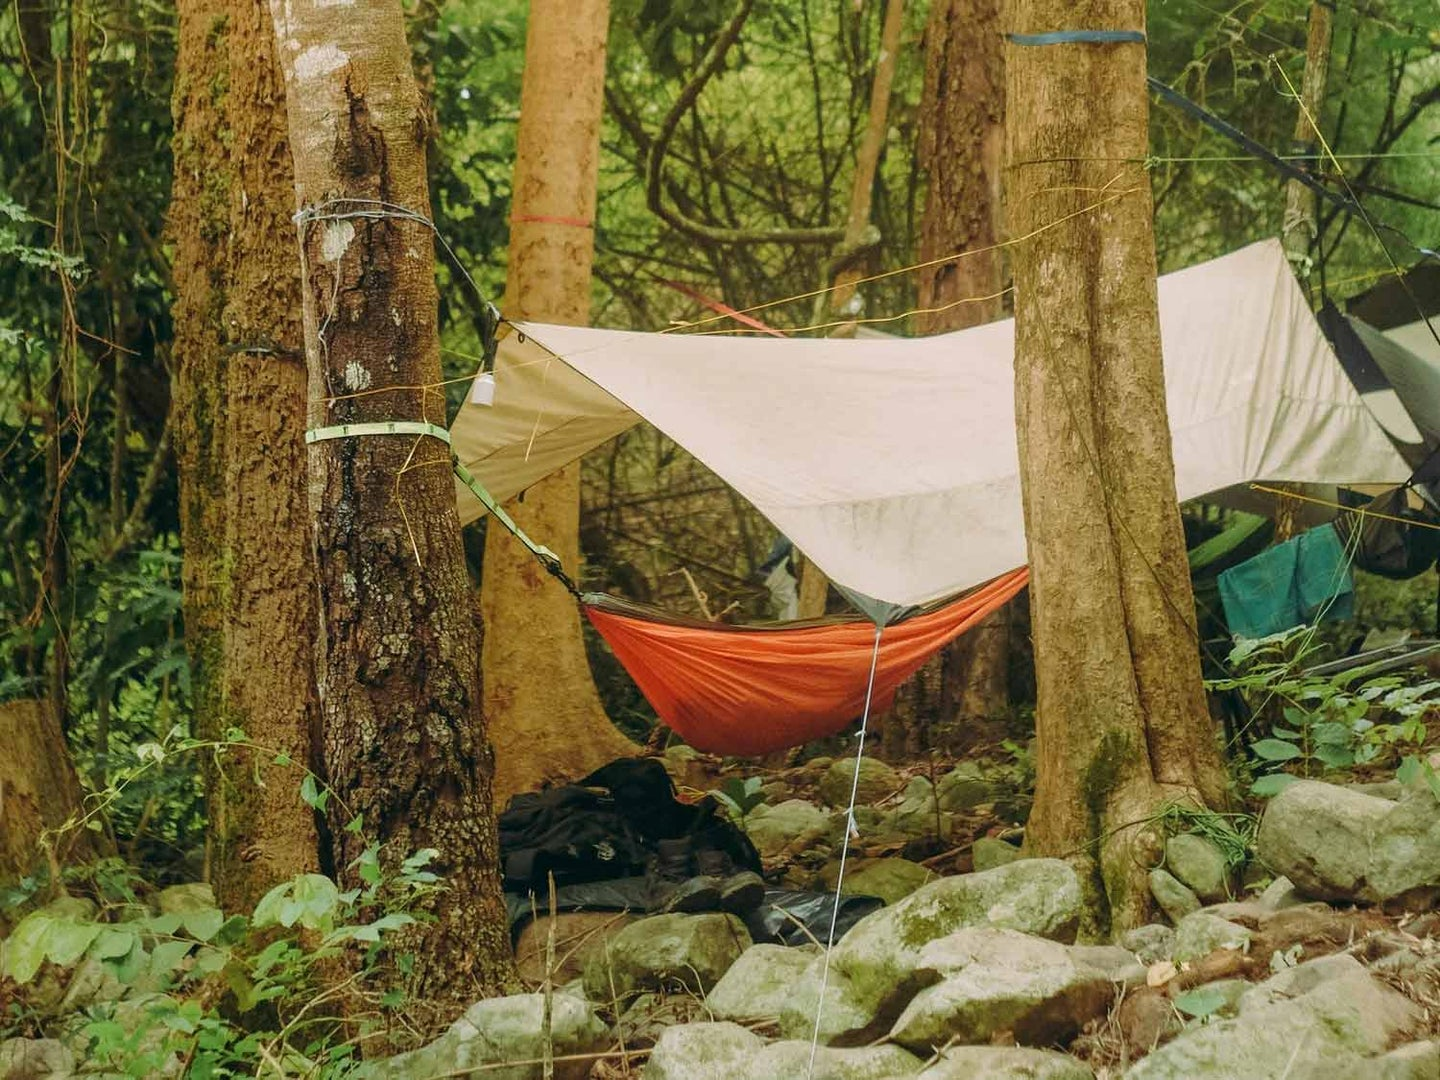 Campsite with a tarp over it